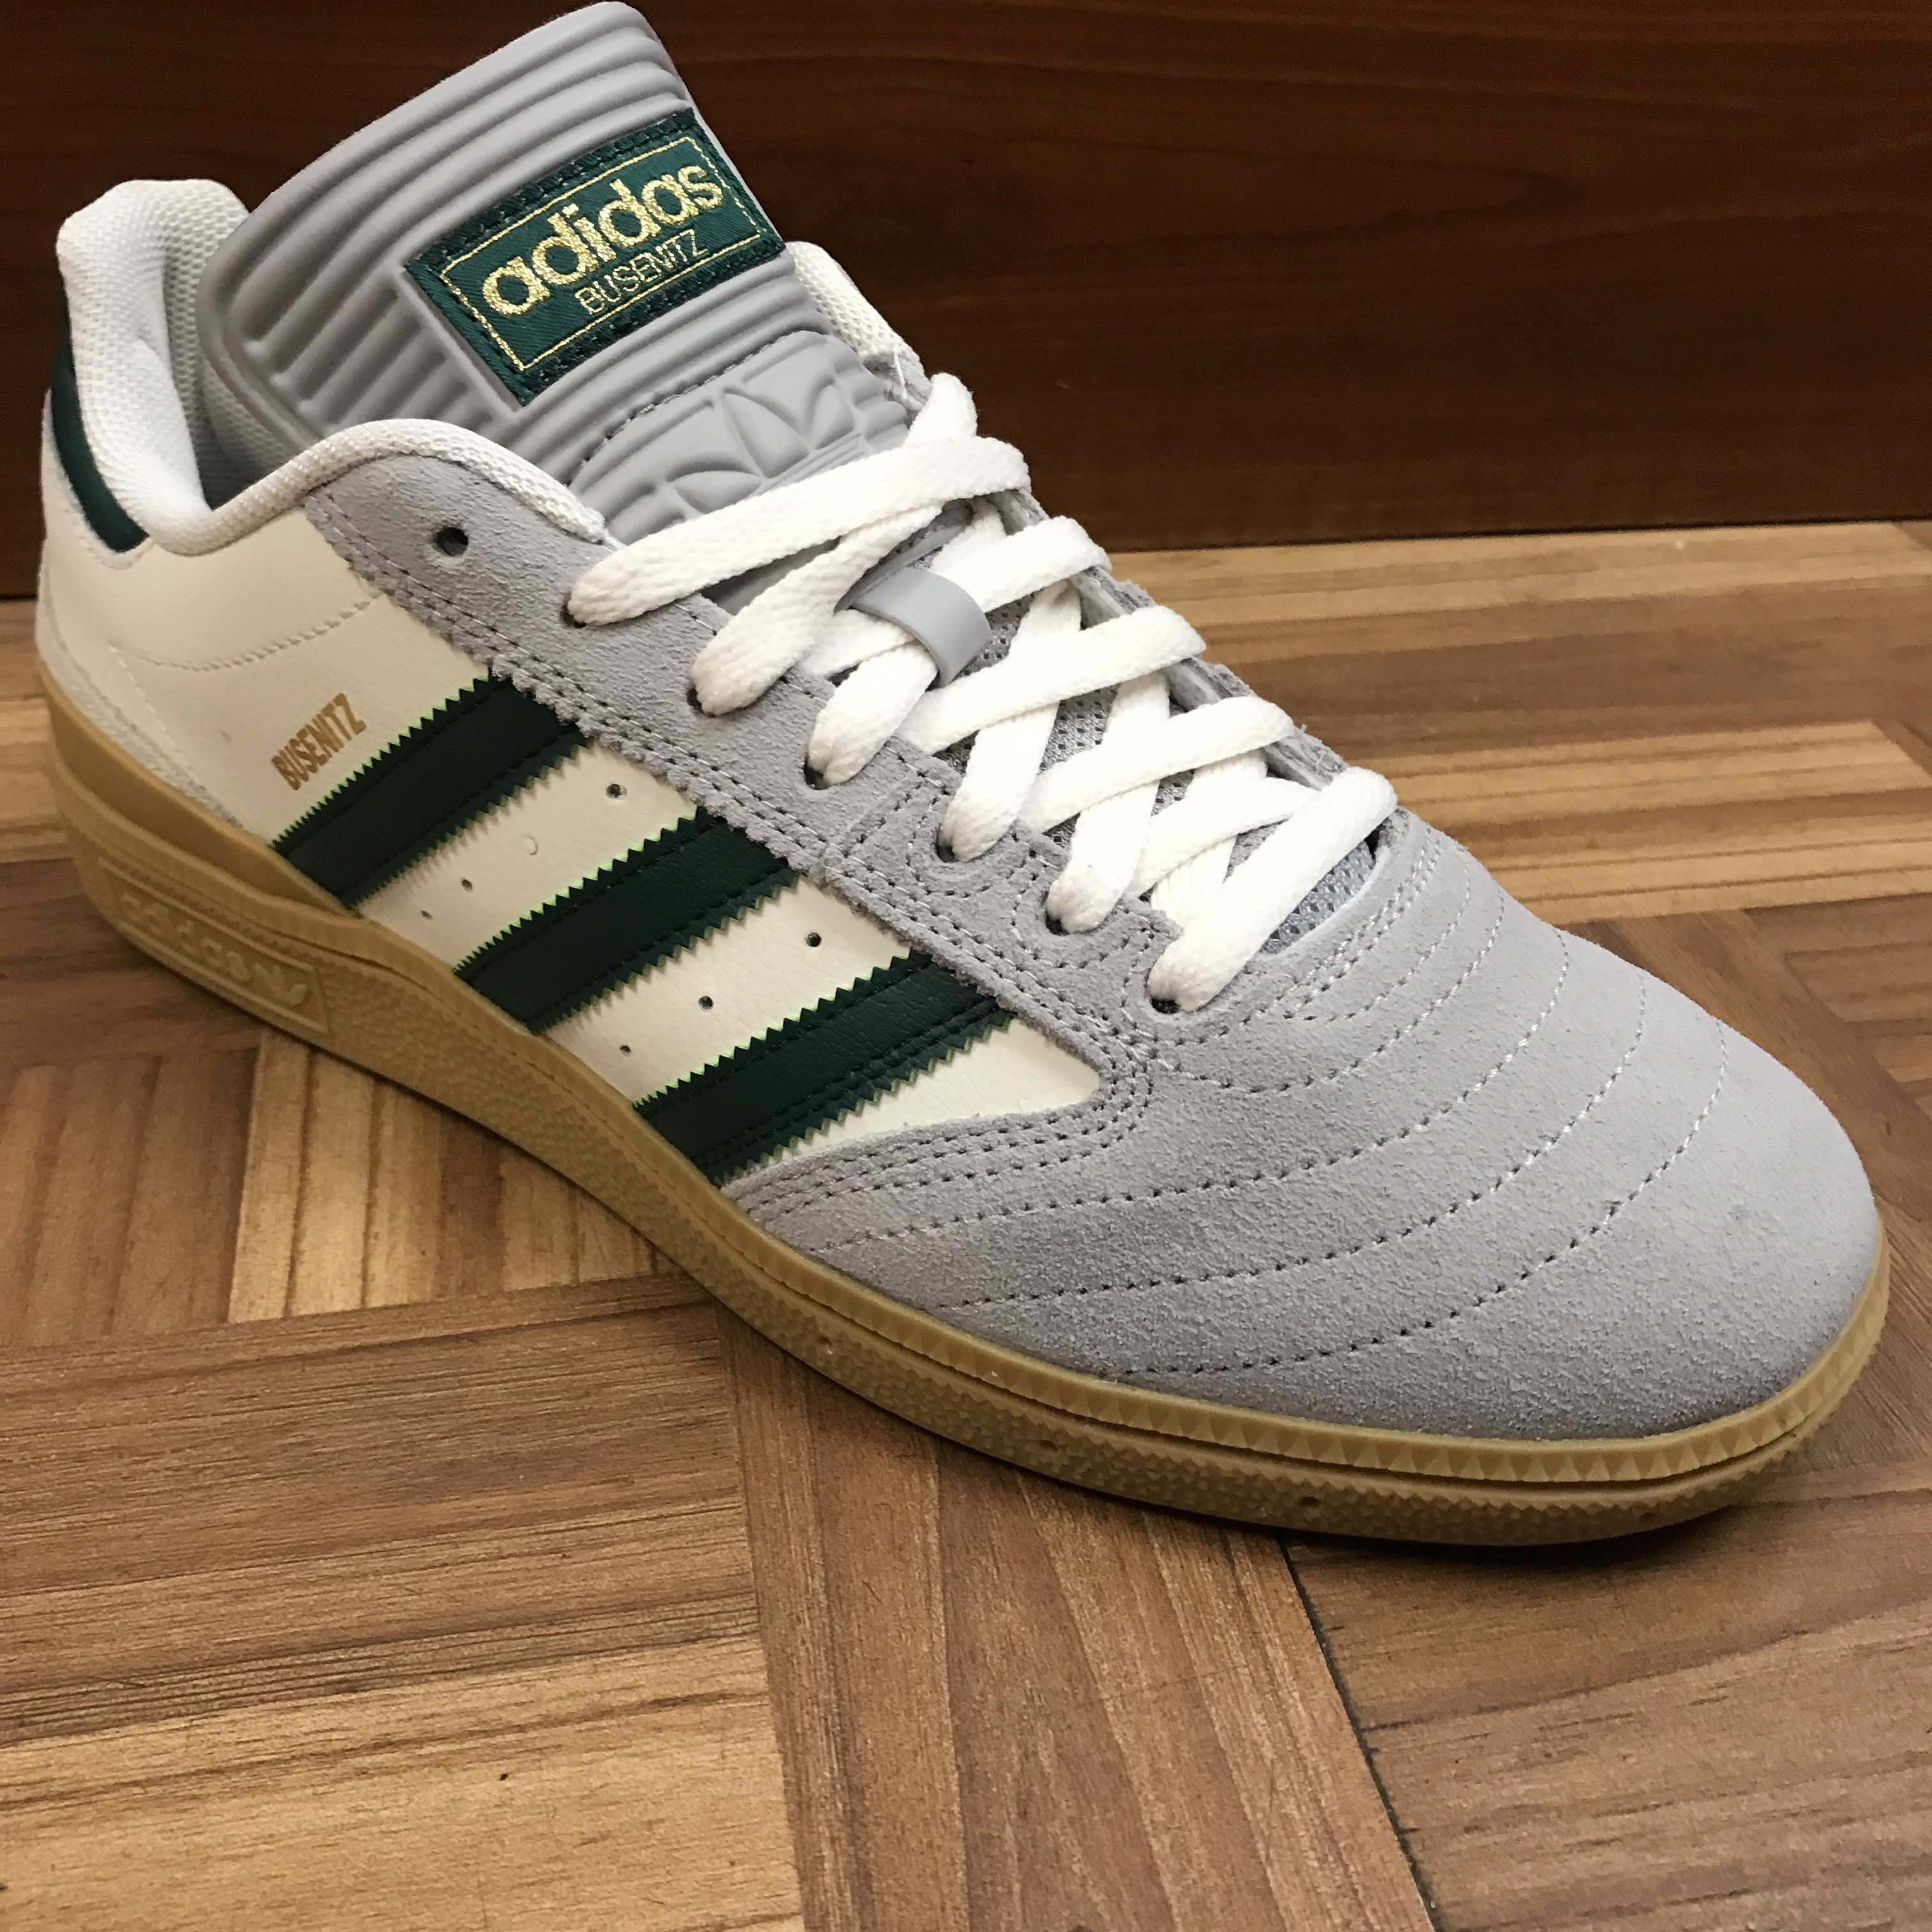 New Adidas Just Came In At Both Shop Locations… Busenitz Pro In Grey ... c073b6052